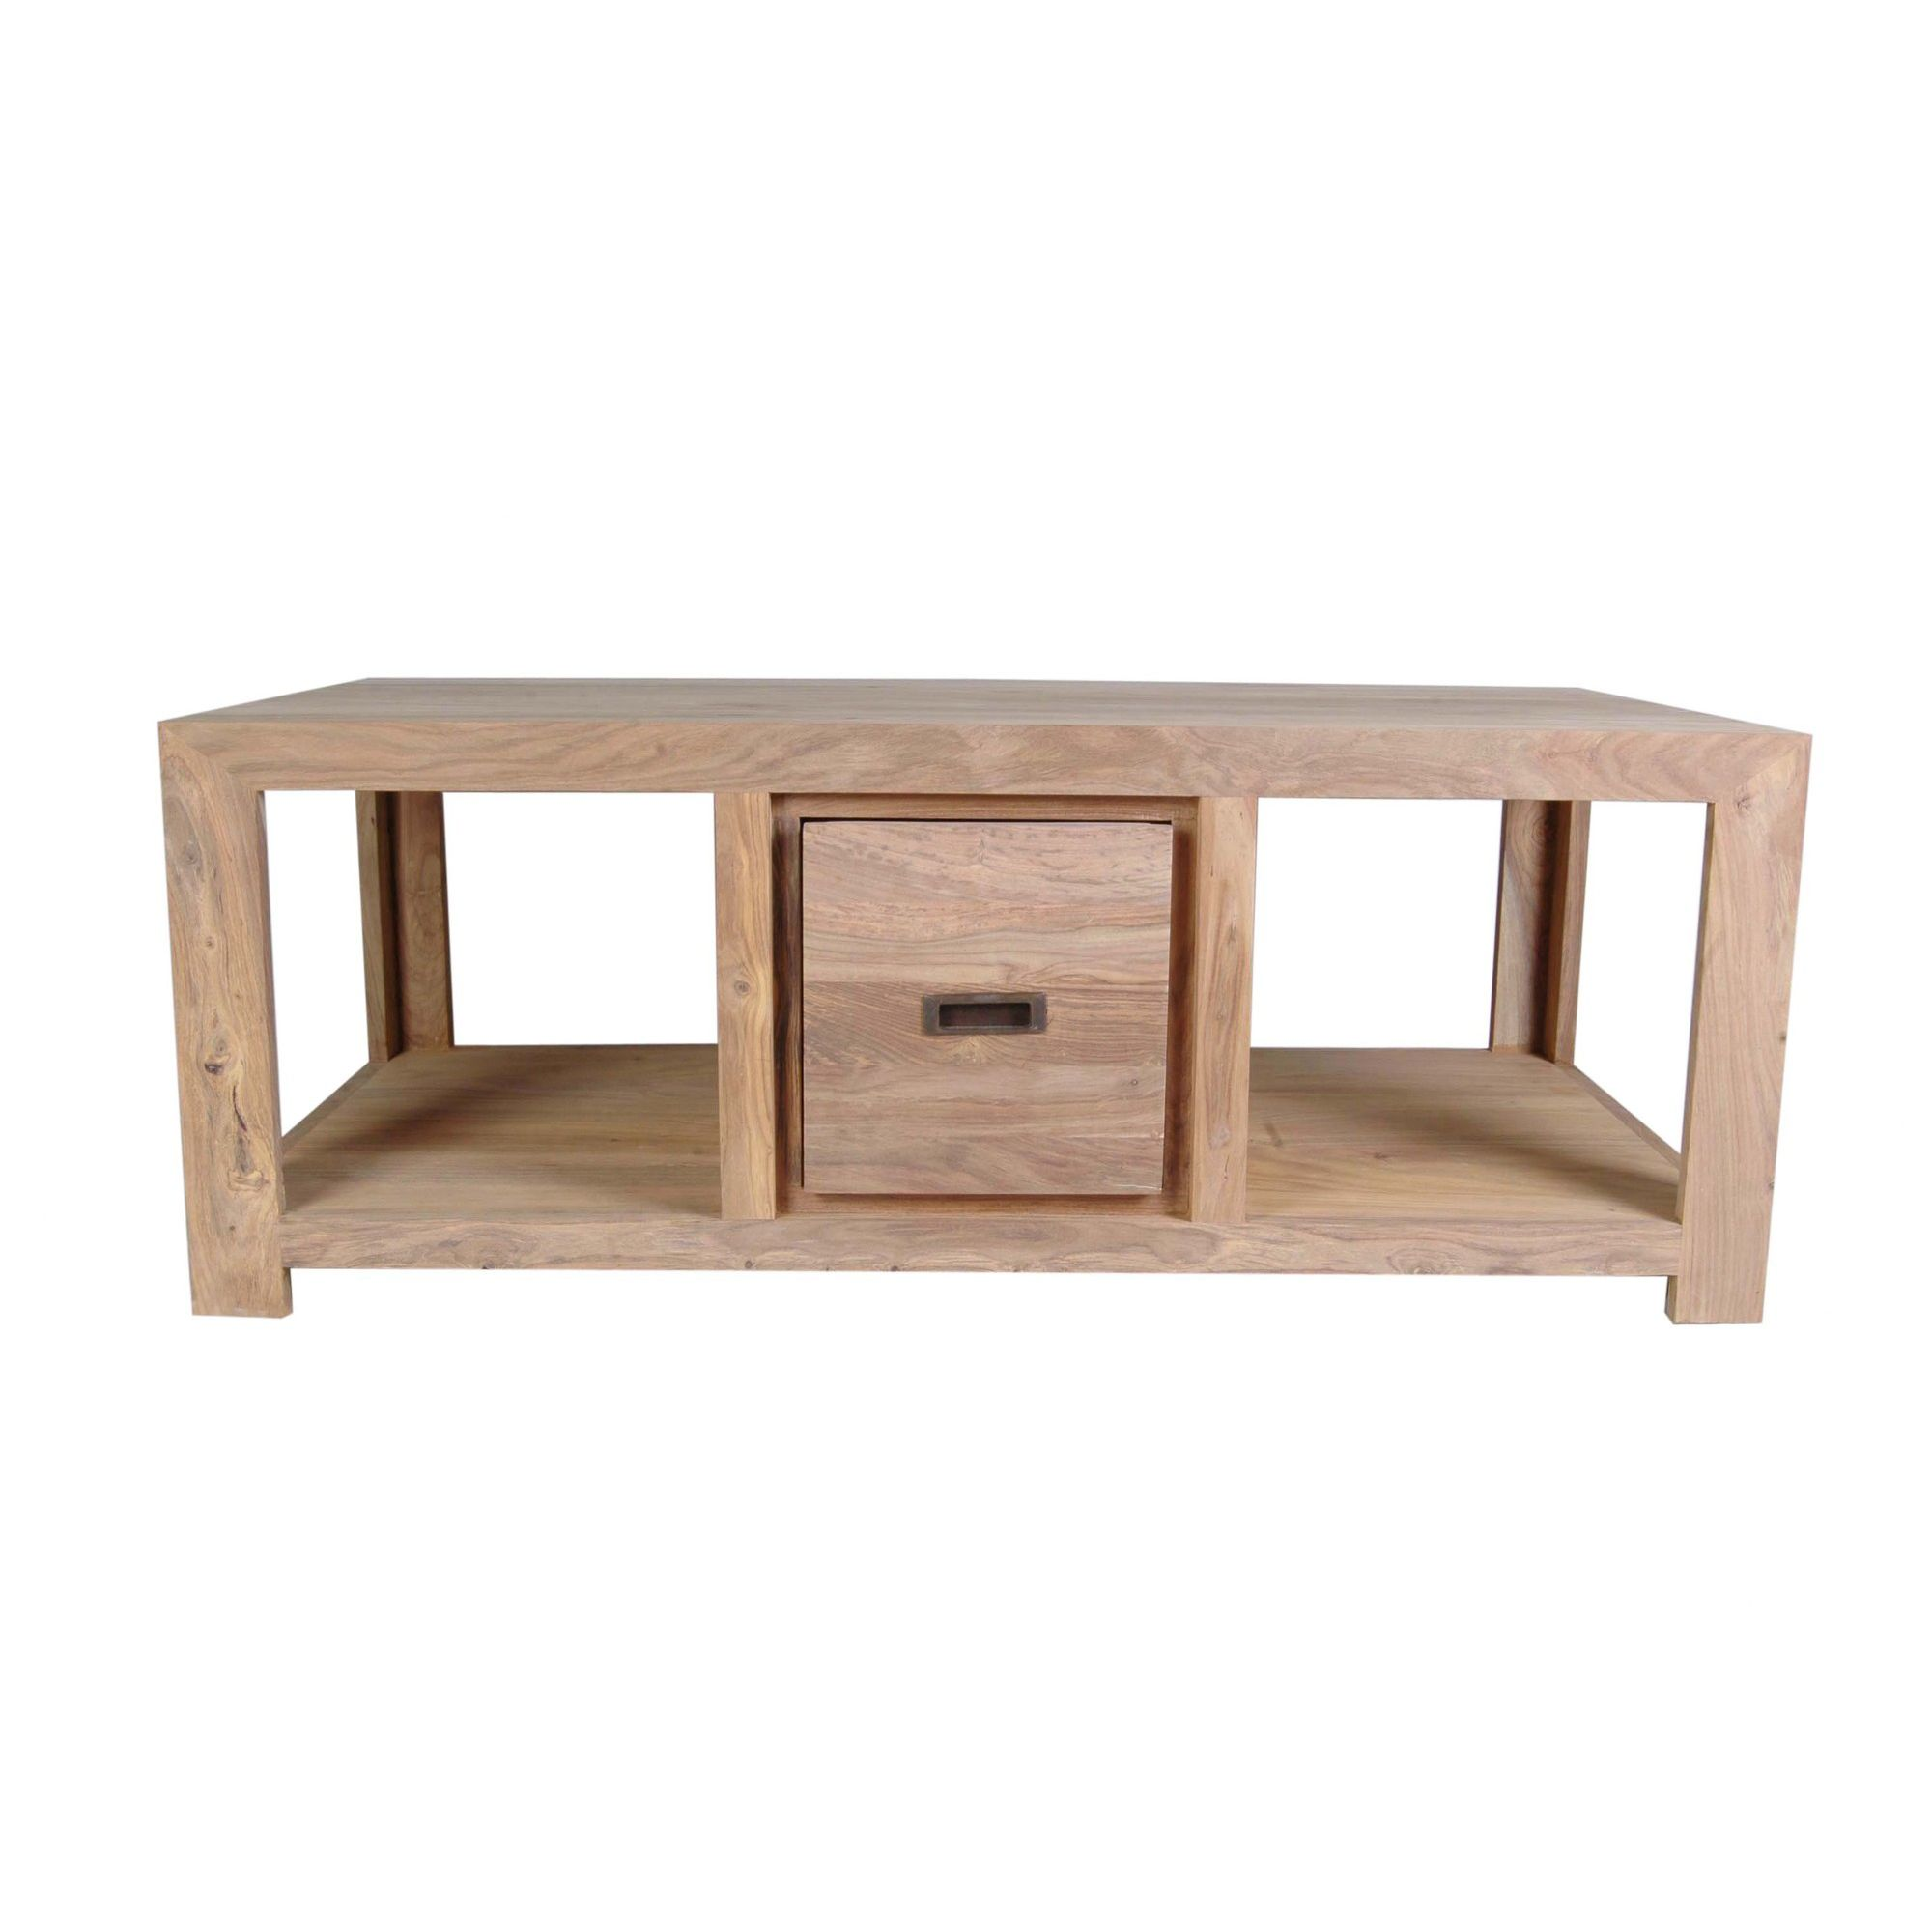 Wiseaction Lingfield Coffee Table with One Drawer at Tesco Direct